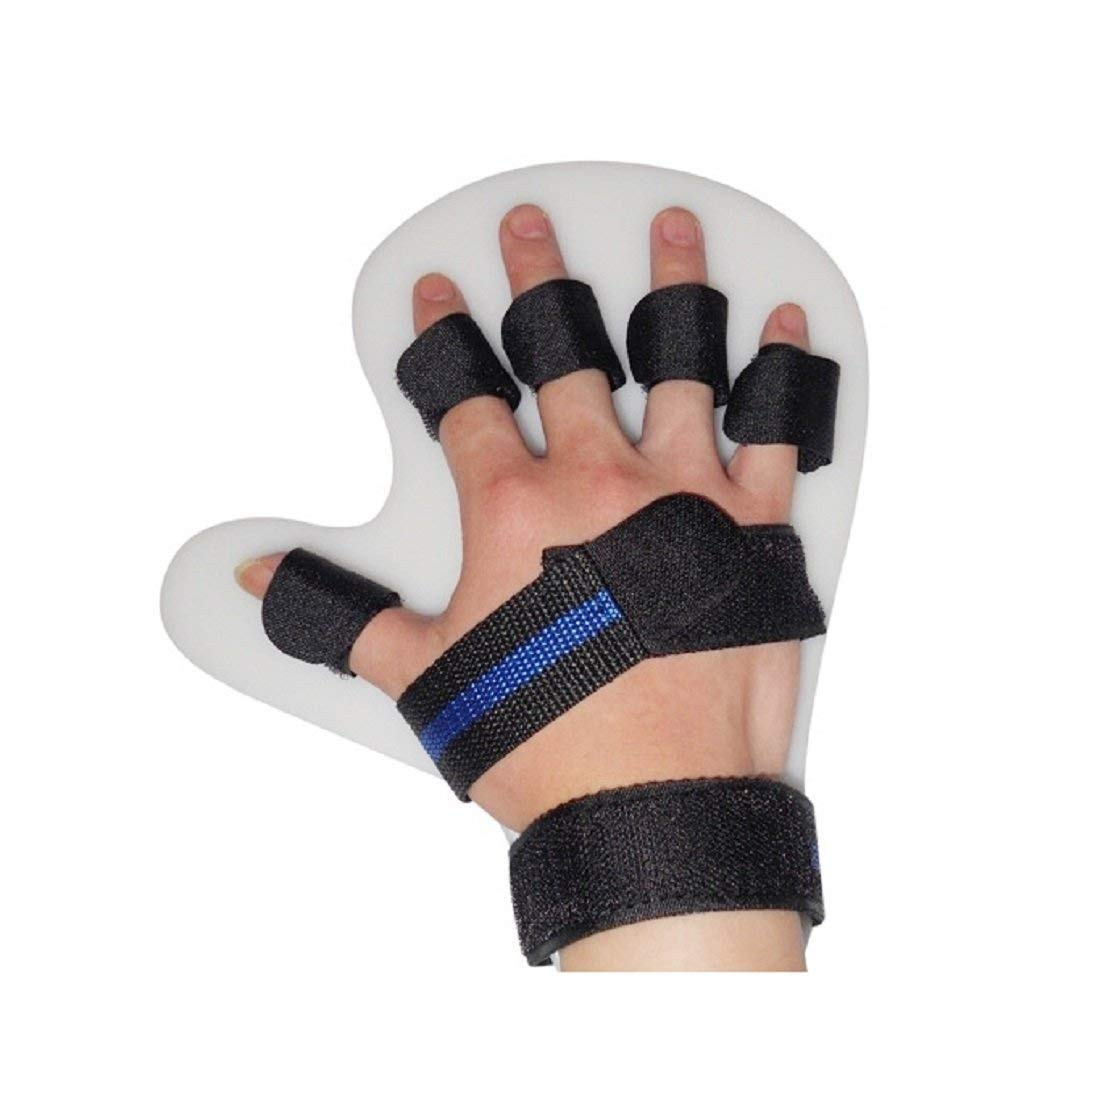 Jinon Finger Training Device,Finger Orthotics Fingerboard Stroke Hemiplegia Finger Orthotics Points for Stroke/hemiplegia/Traumatic Brain Injury (Black,Right Hand)